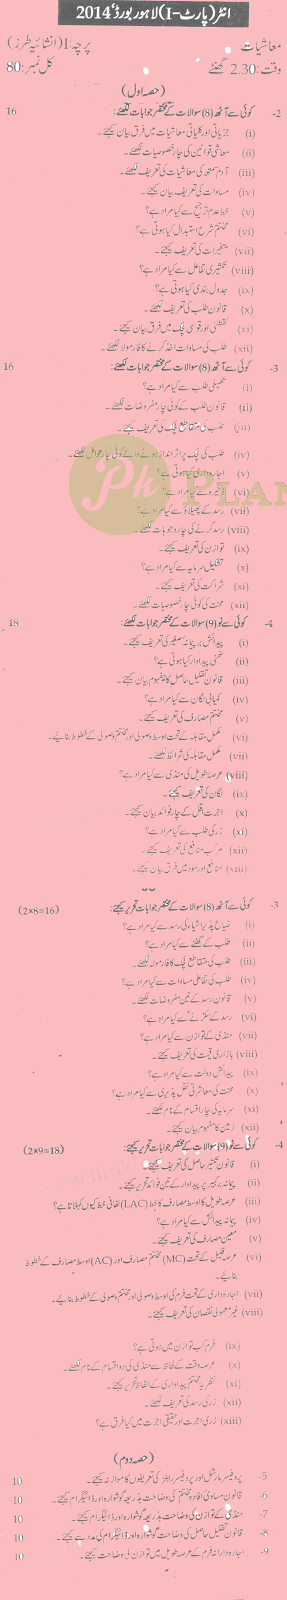 Past Papers of Economics Inter Part 1 Lahore Board 2014 in English